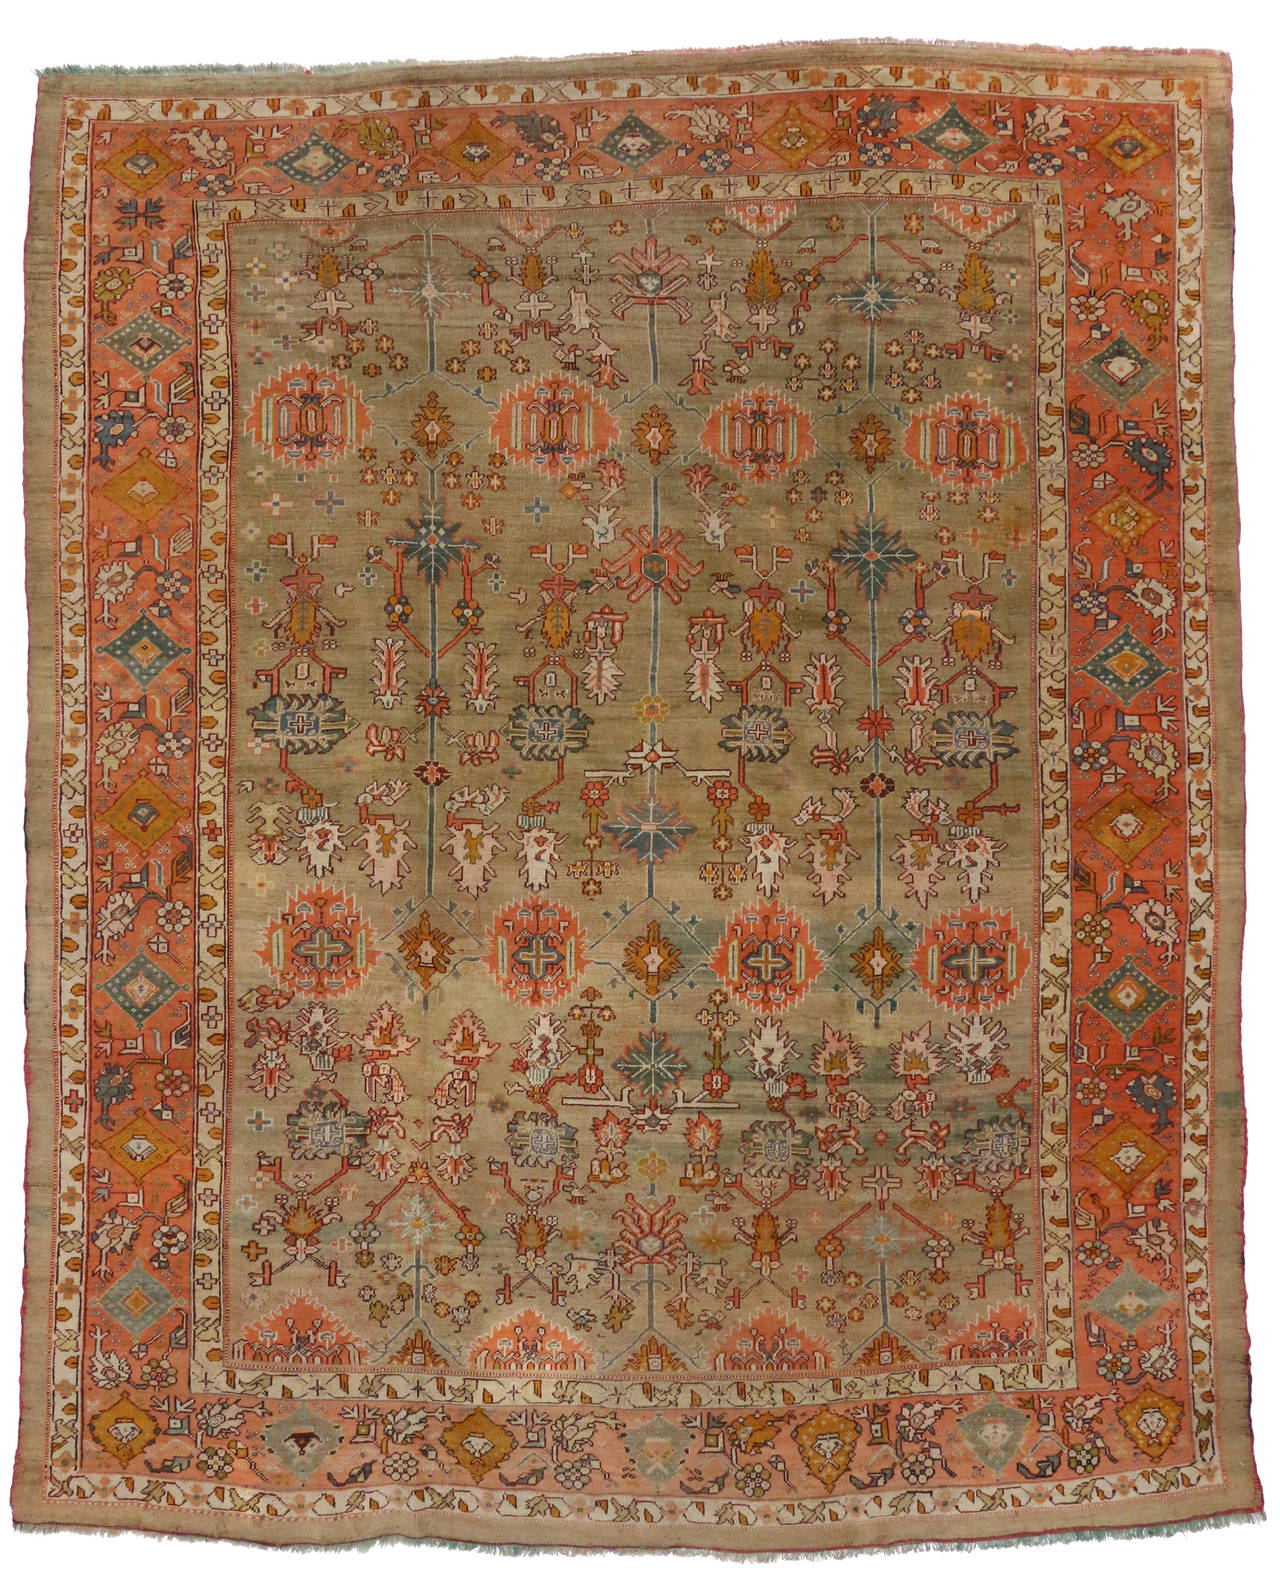 Antique Turkish Oushak Area Rug 09 10 Quot X 12 02 Quot At 1stdibs